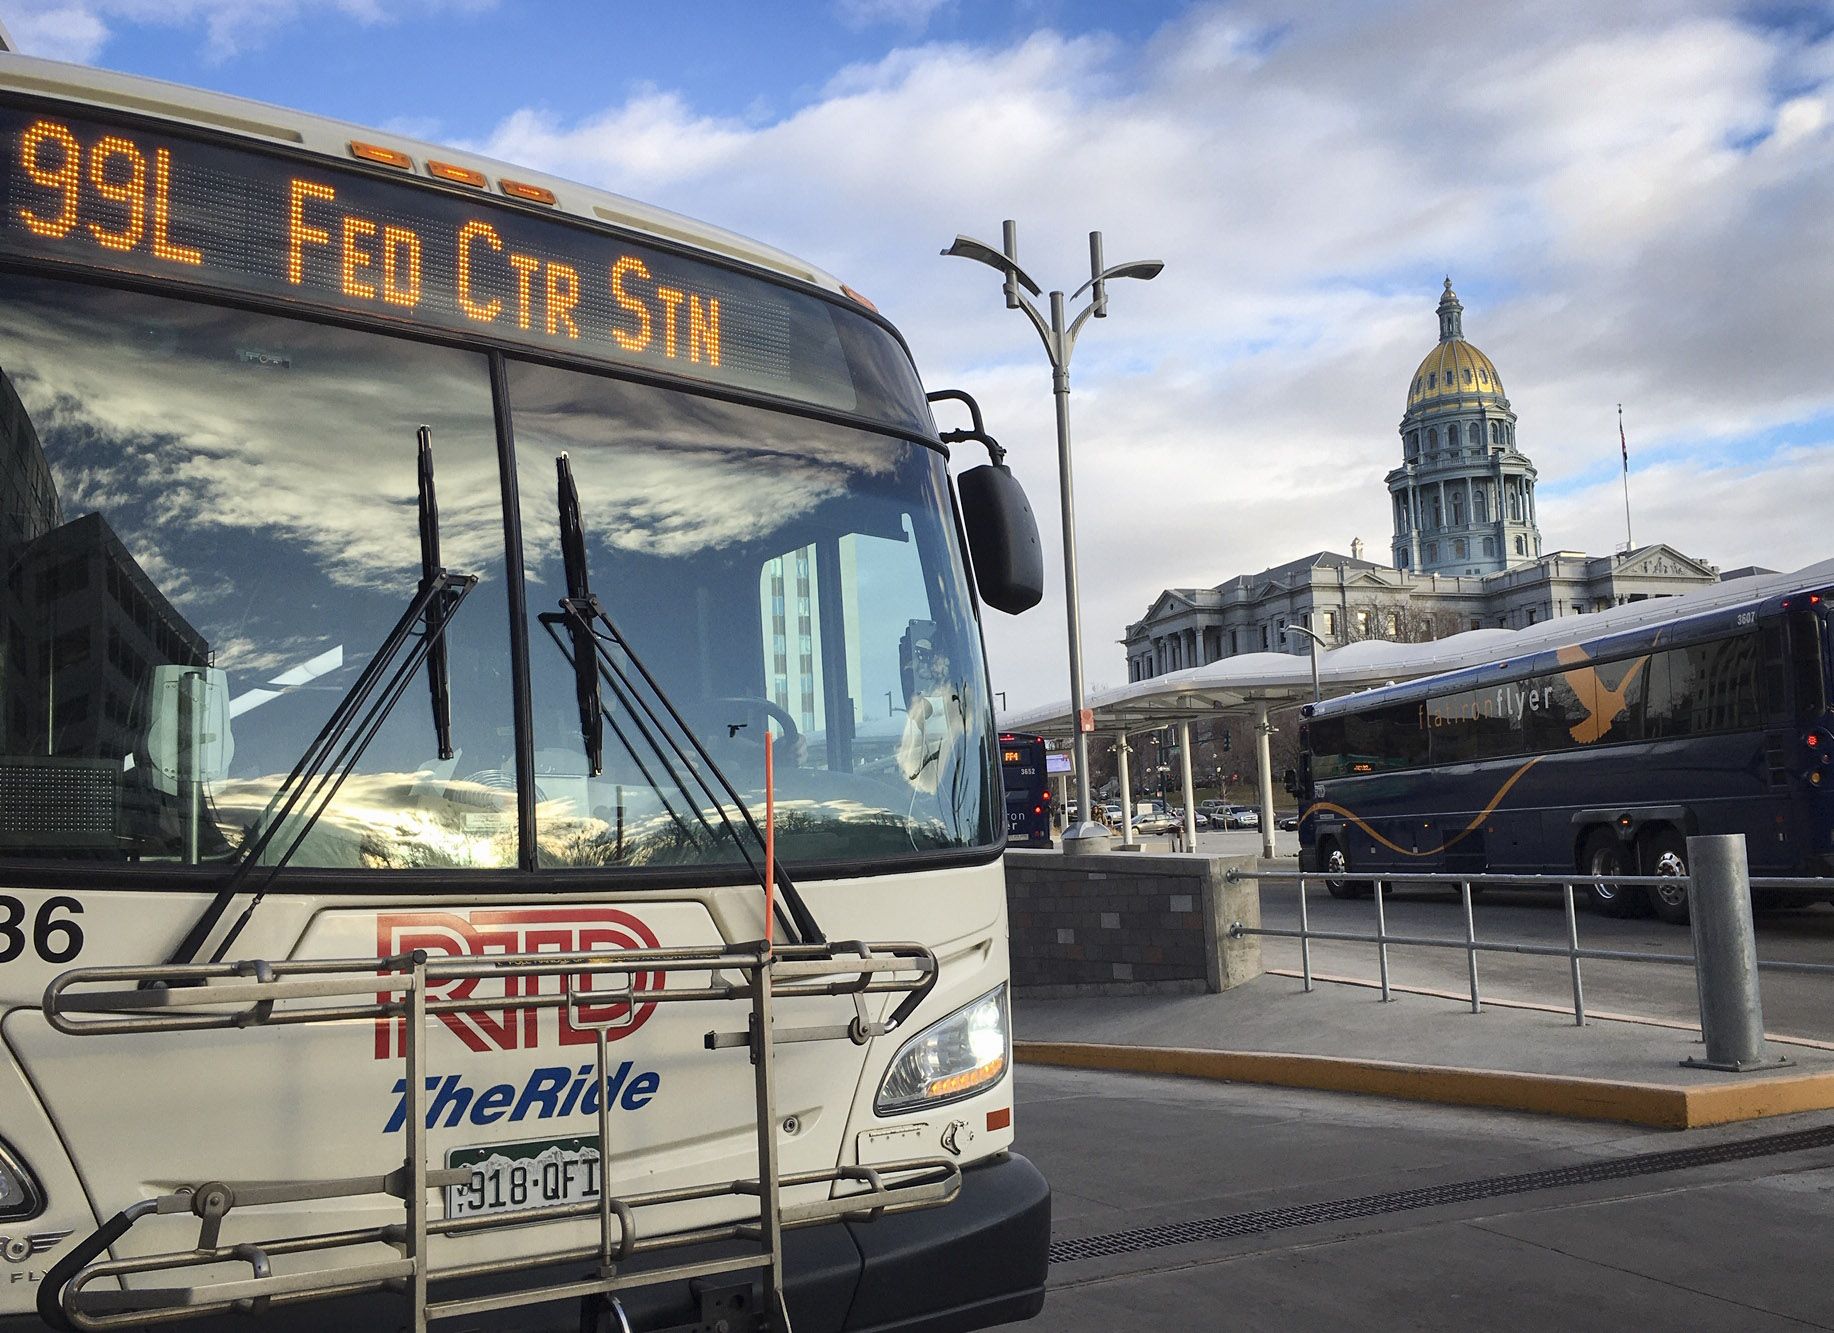 An RTD bus is parked at Civic Center Station in Denver, just across Colfax Avenue from the Colorado state Capitol.